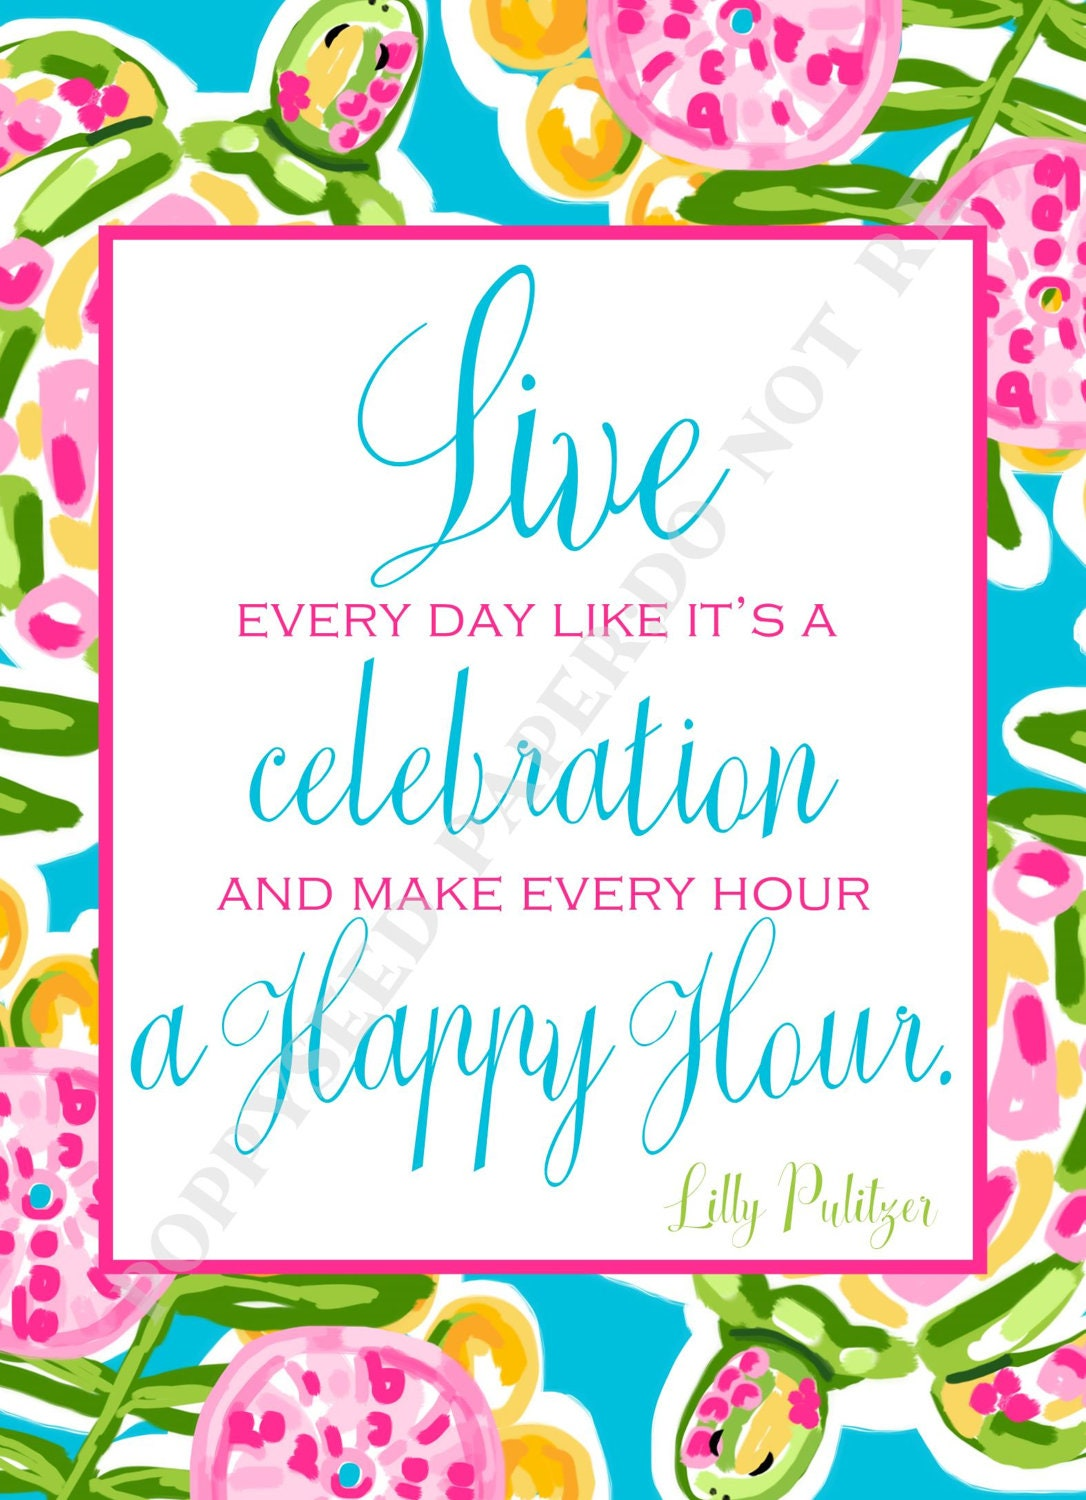 Lilly Pulitzer Quotes Lilly Pulitzer Quotes Preppy Quoteslilly Pulitzer